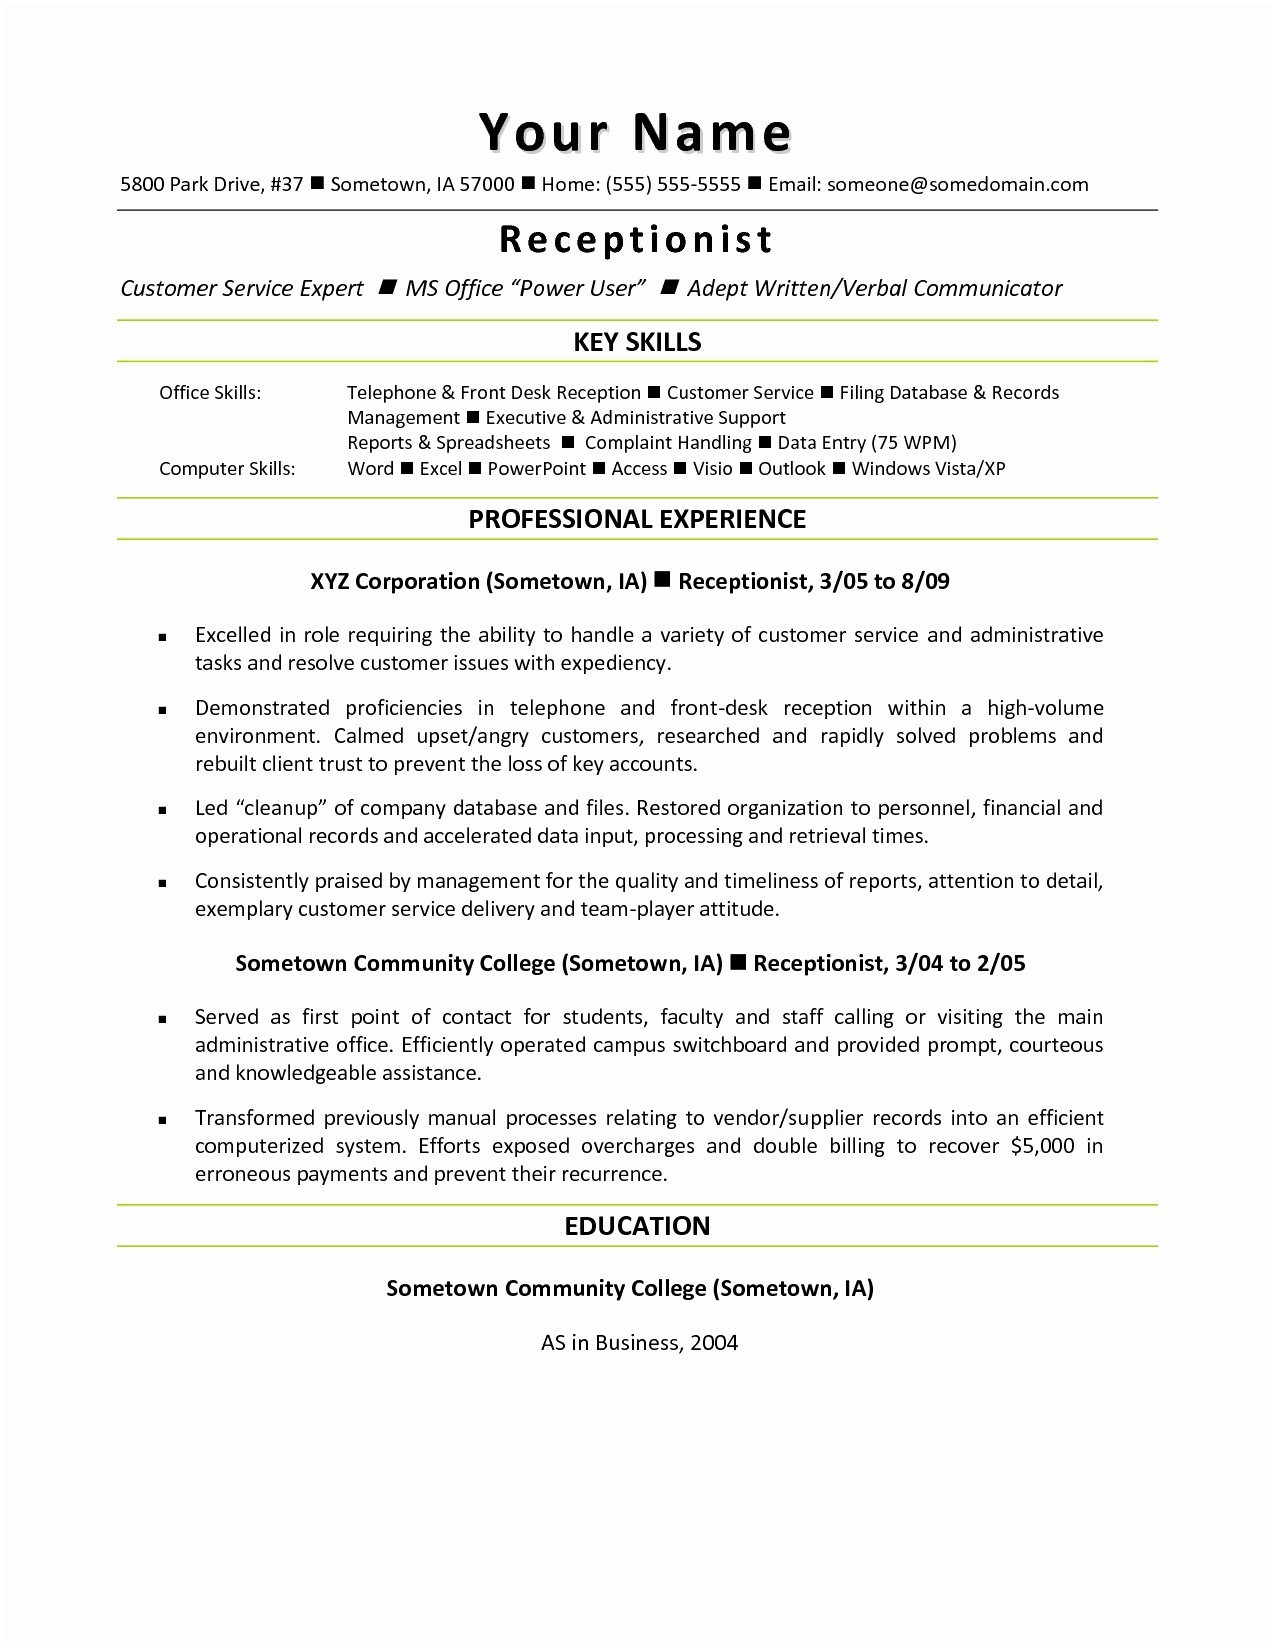 Cover Letter Word Template Free - Resume Microsoft Word Fresh Resume Mail format Sample Fresh